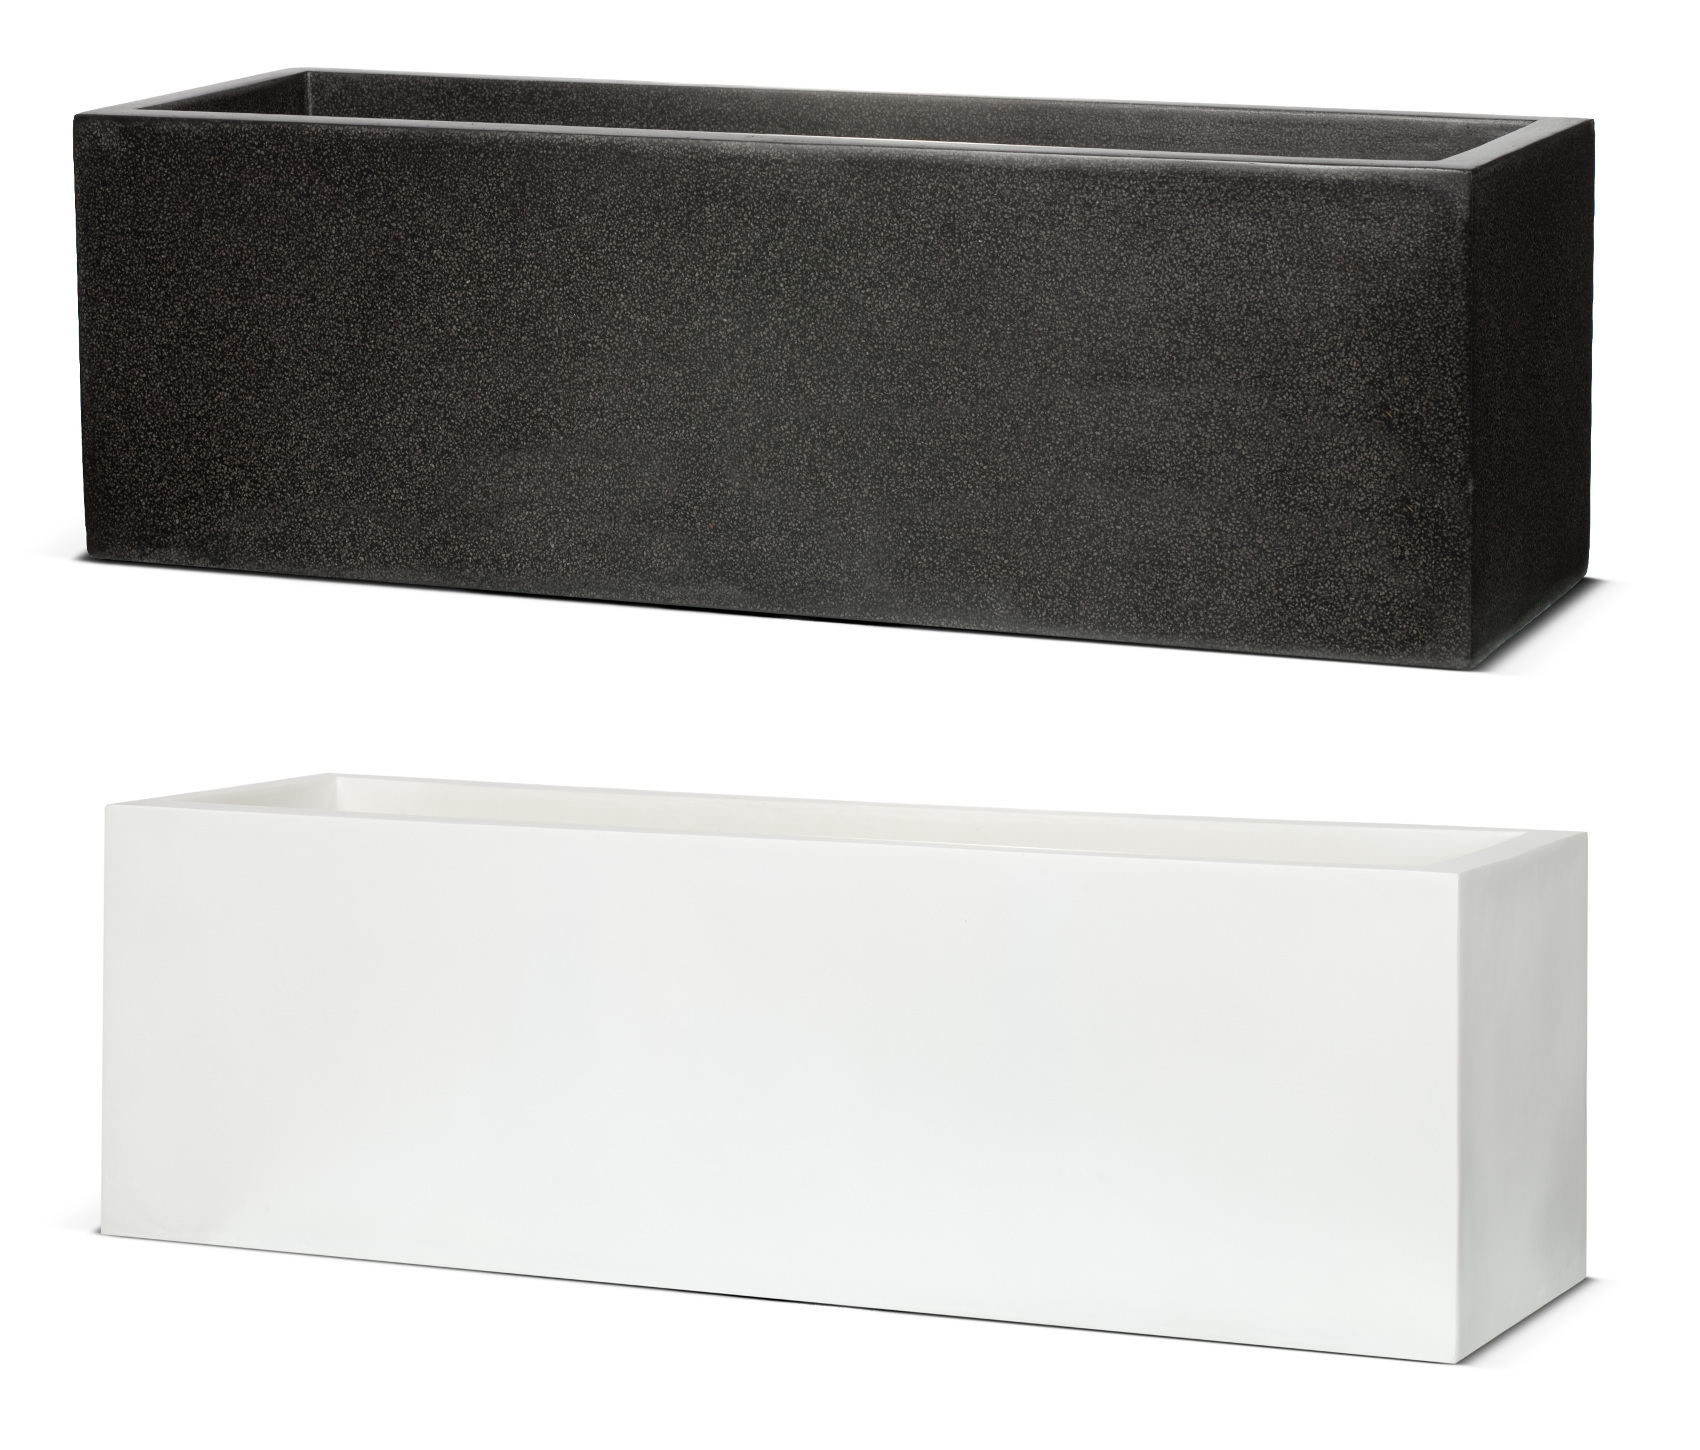 planter box series rectangular veradek long planters rectangle metallic pin